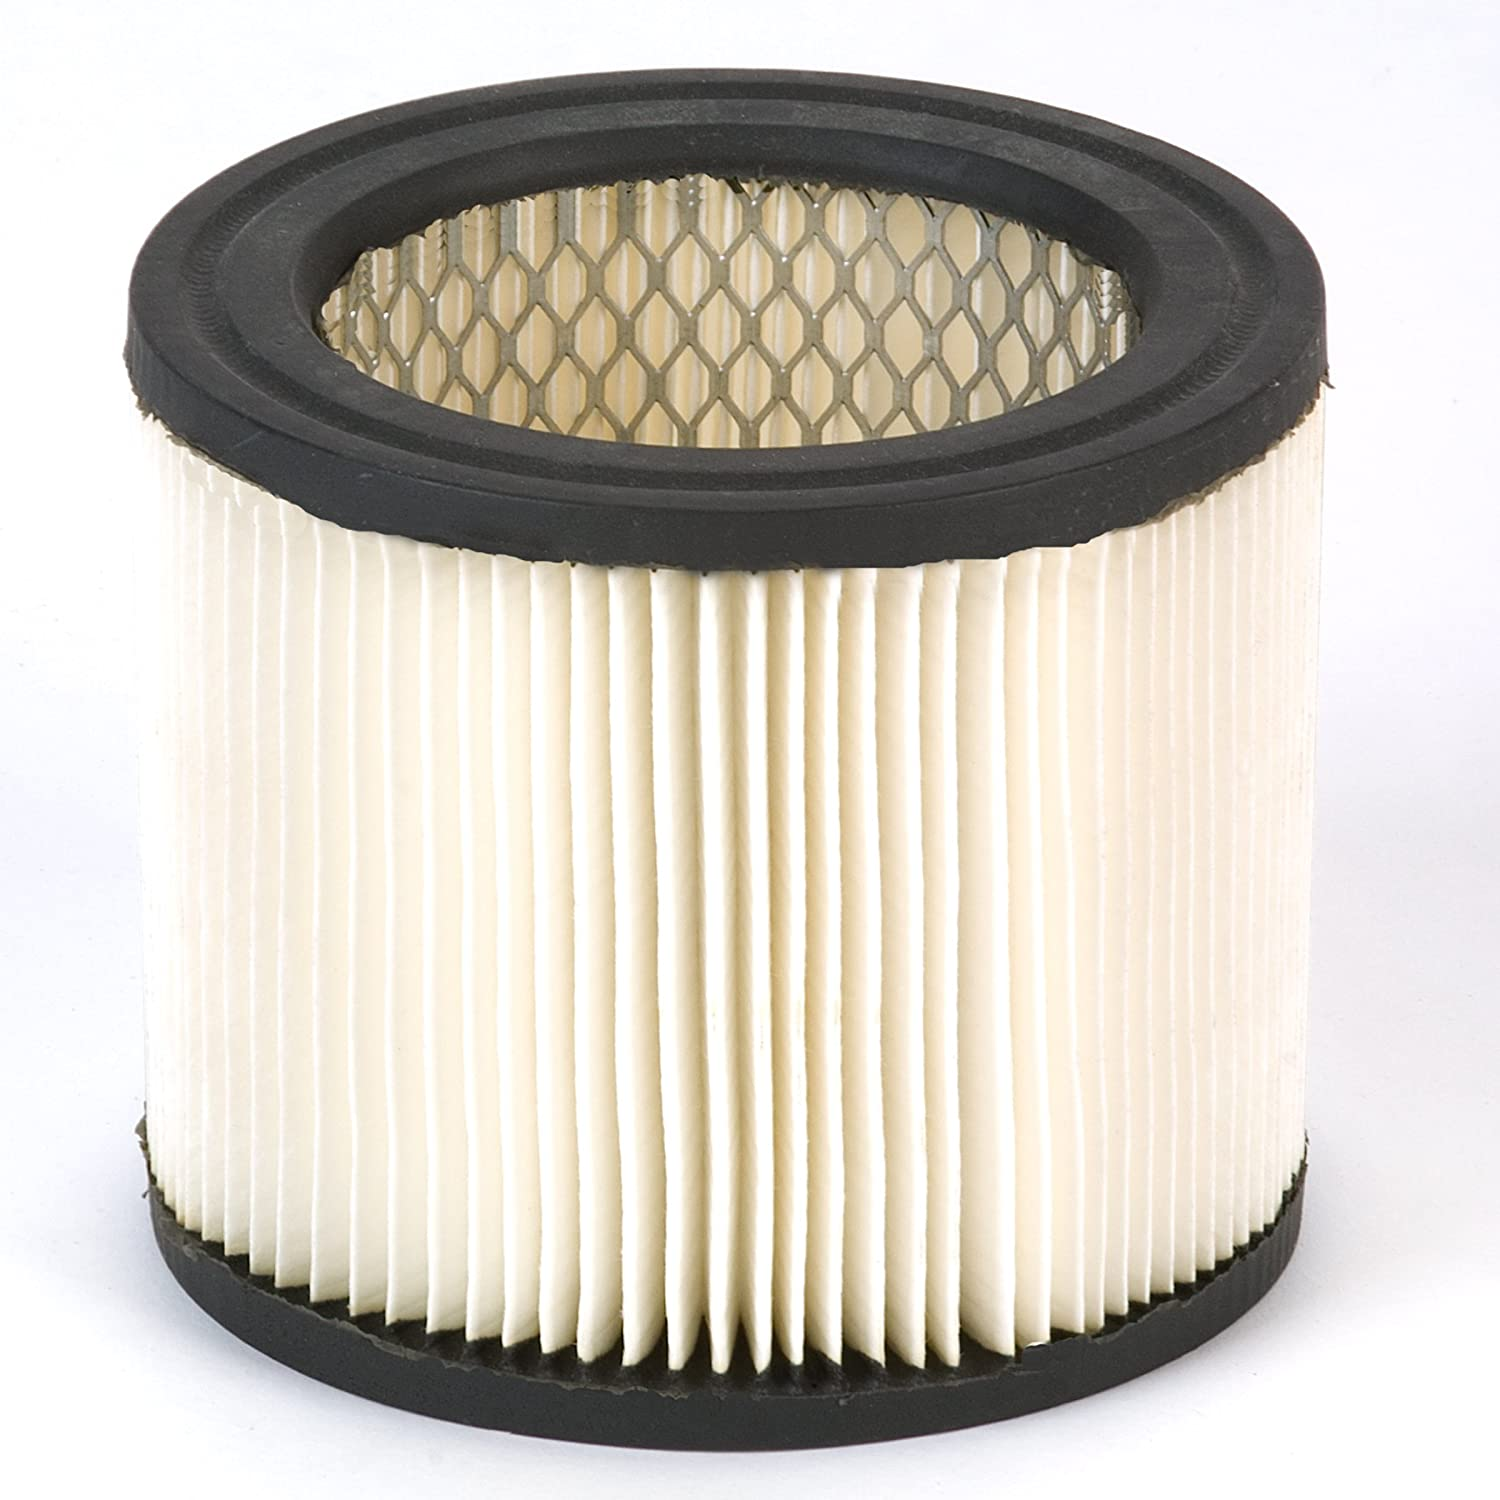 B00005AXI2 Shop-Vac 903-98 Genuine Hangup Wet/Dry Vacuum Cartridge Filter 81P2BSTOmQoL